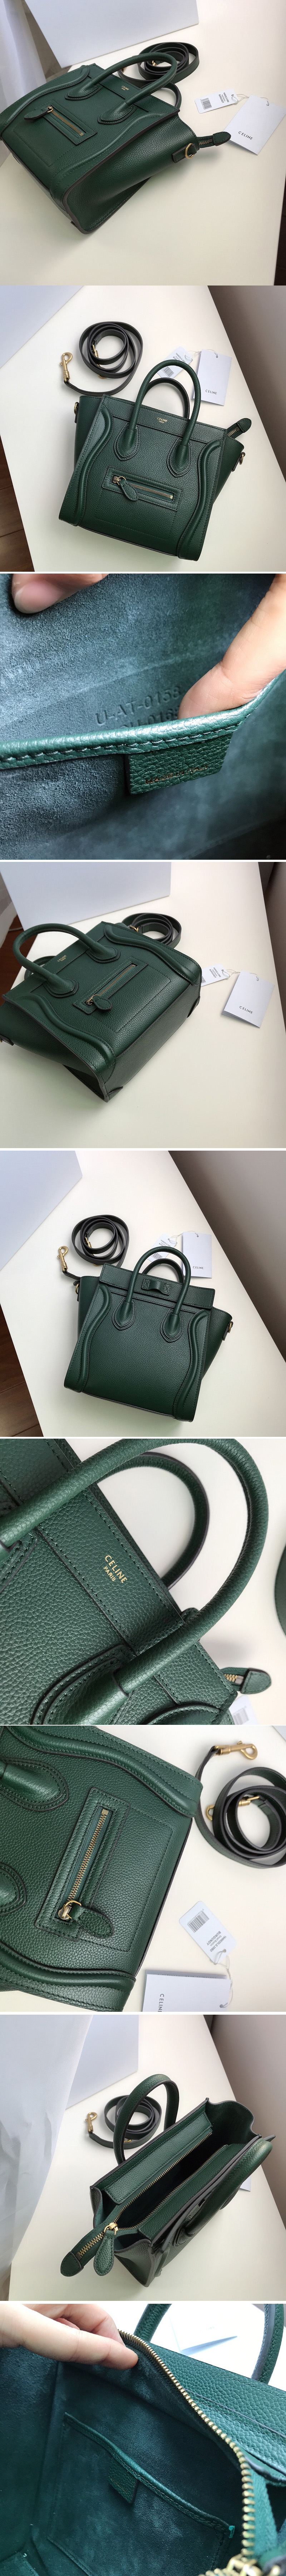 Replica Celine 189243 Nano Luggage Bag in Light Green Drummed Calfskin Leather